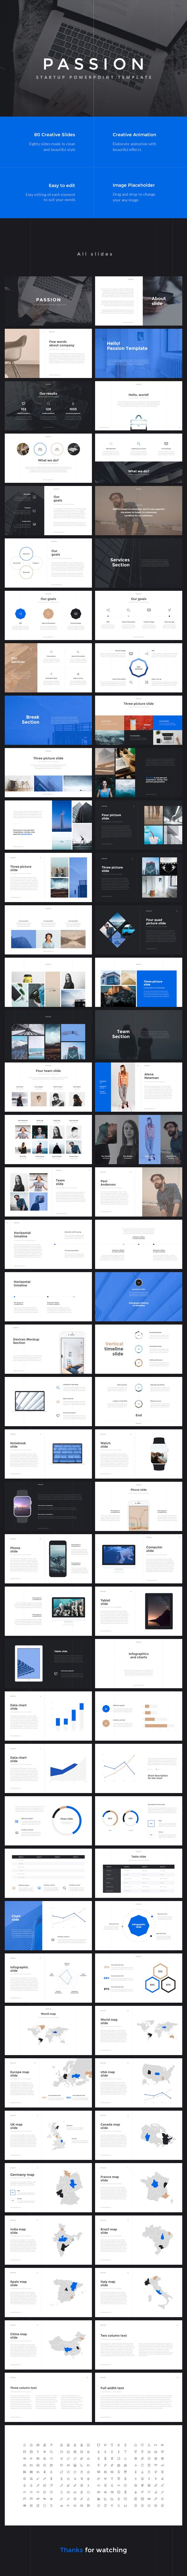 Passion Startup PowerPoint Template (PowerPoint Templates)